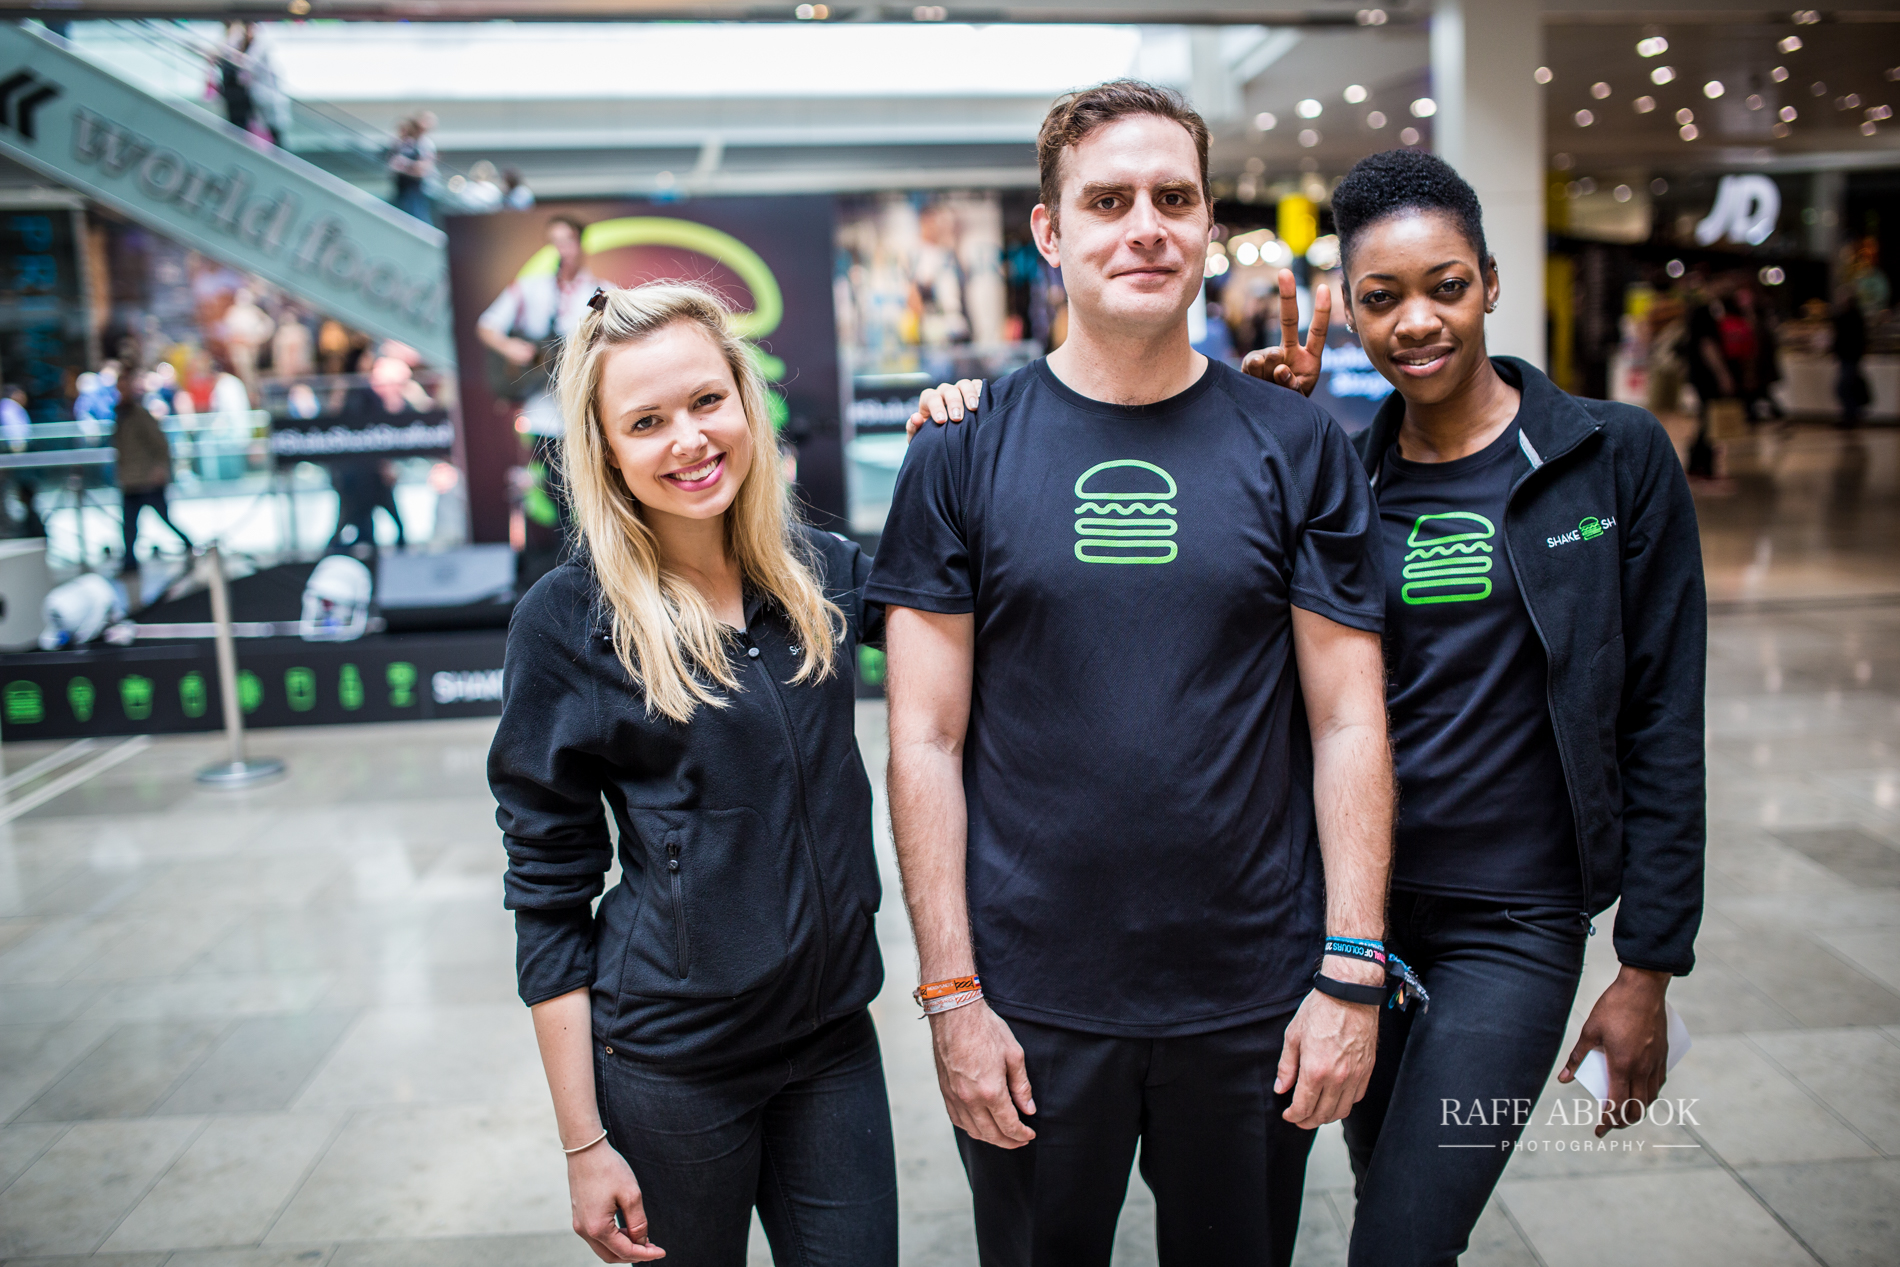 shake shack uk westfield stratford london experiential basketball-1046.jpg